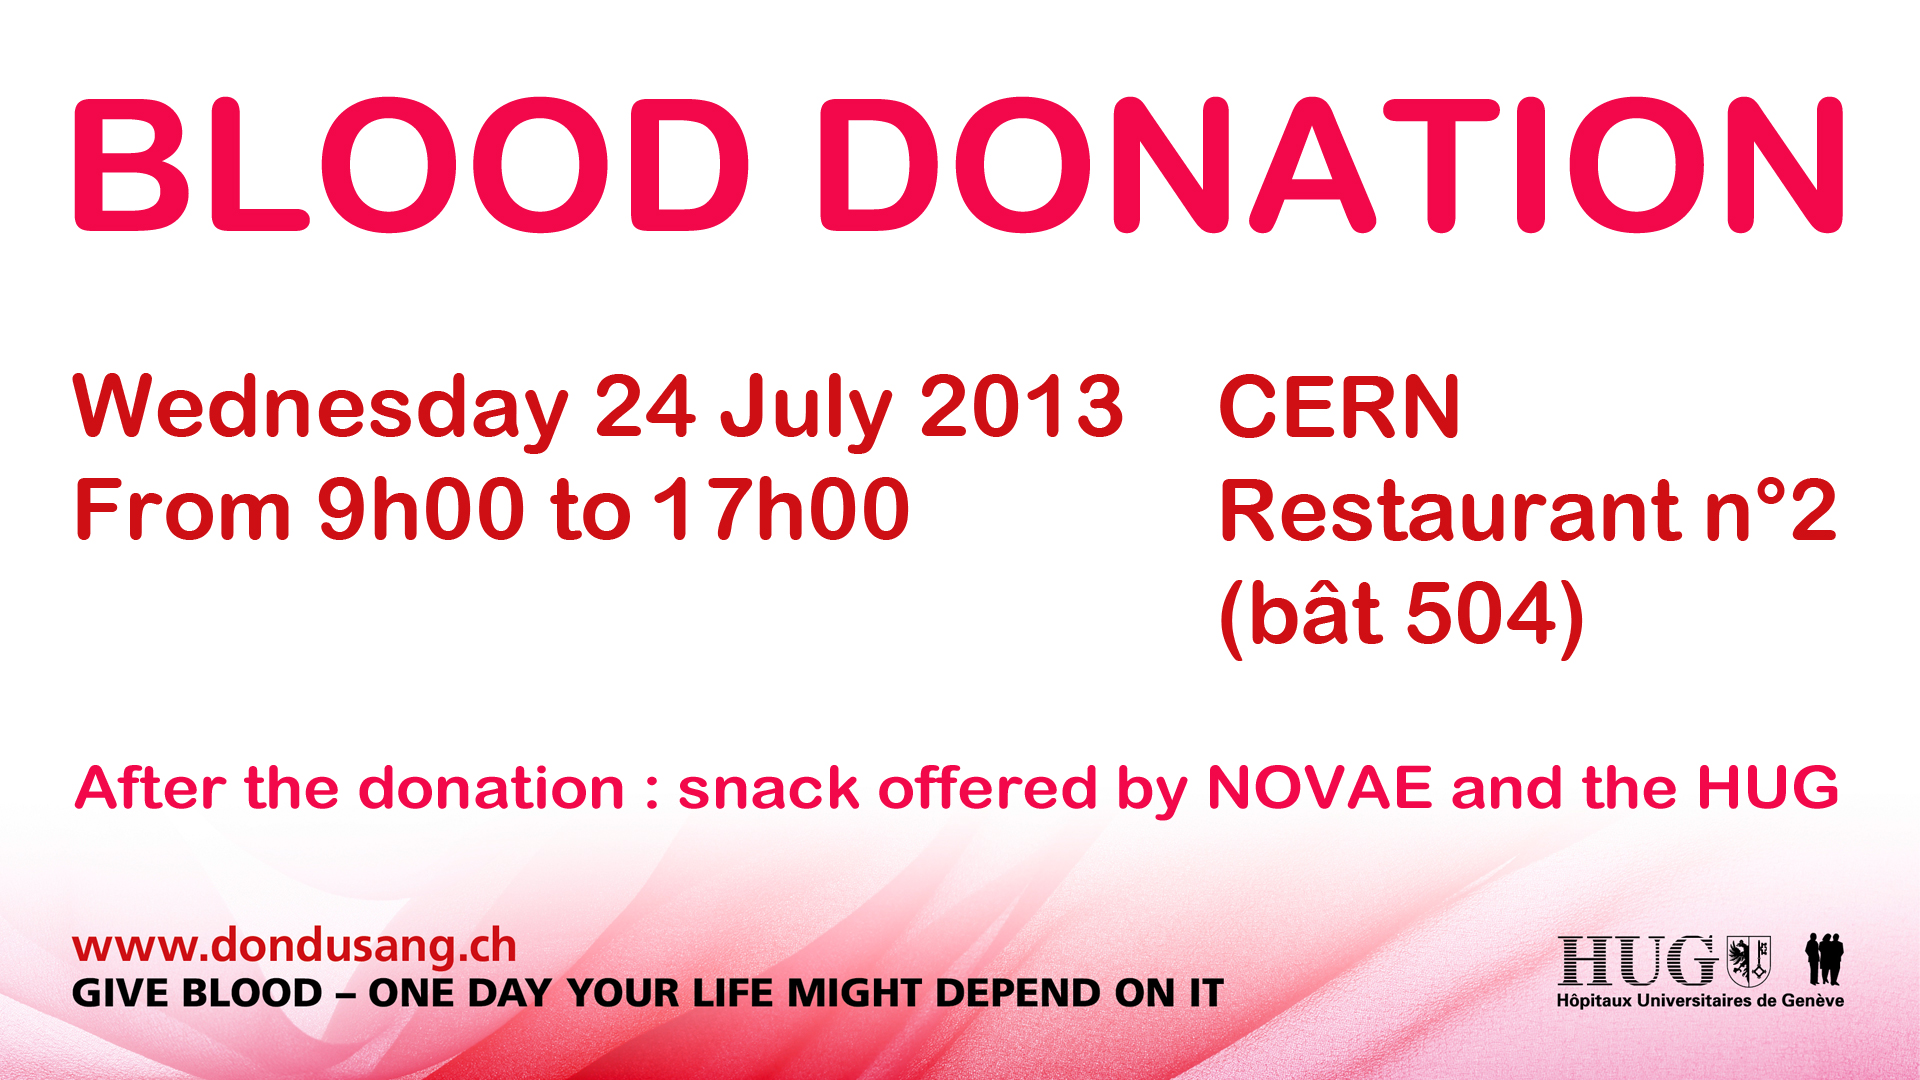 Blood Donation 24 July Cern Bulletin